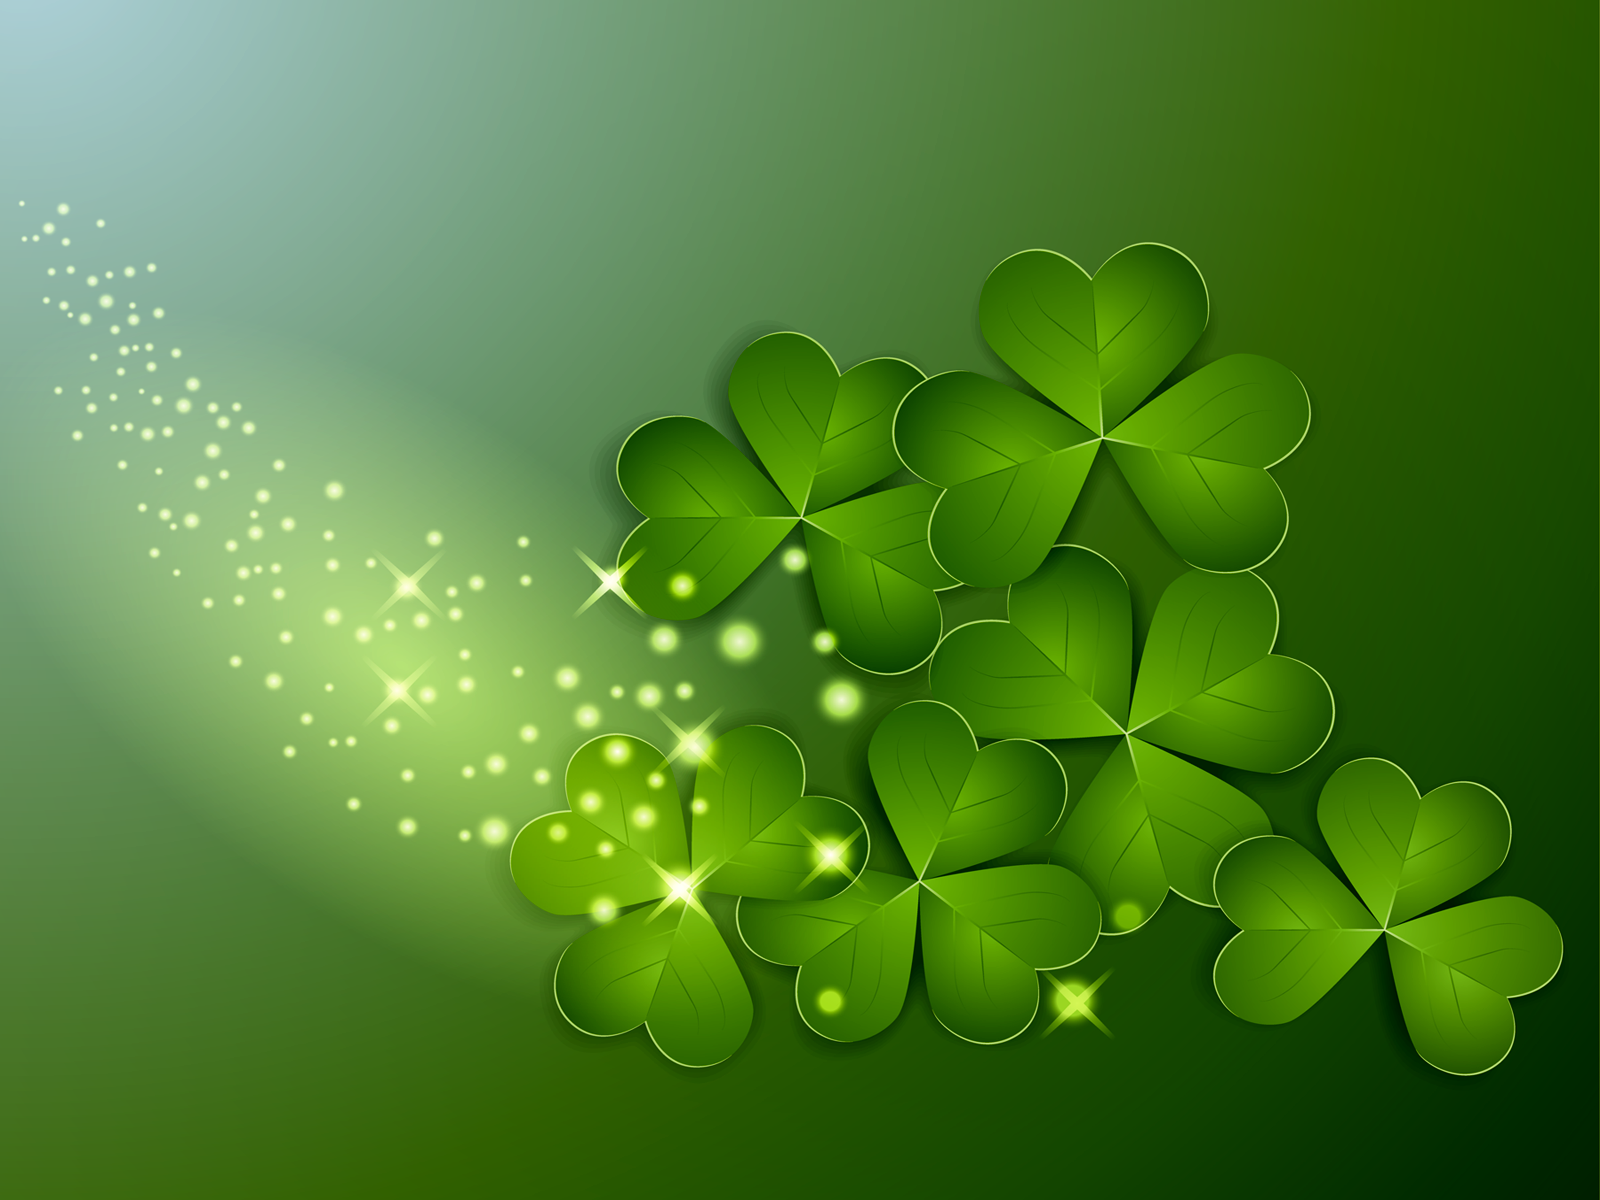 St. Pat Wallpaper